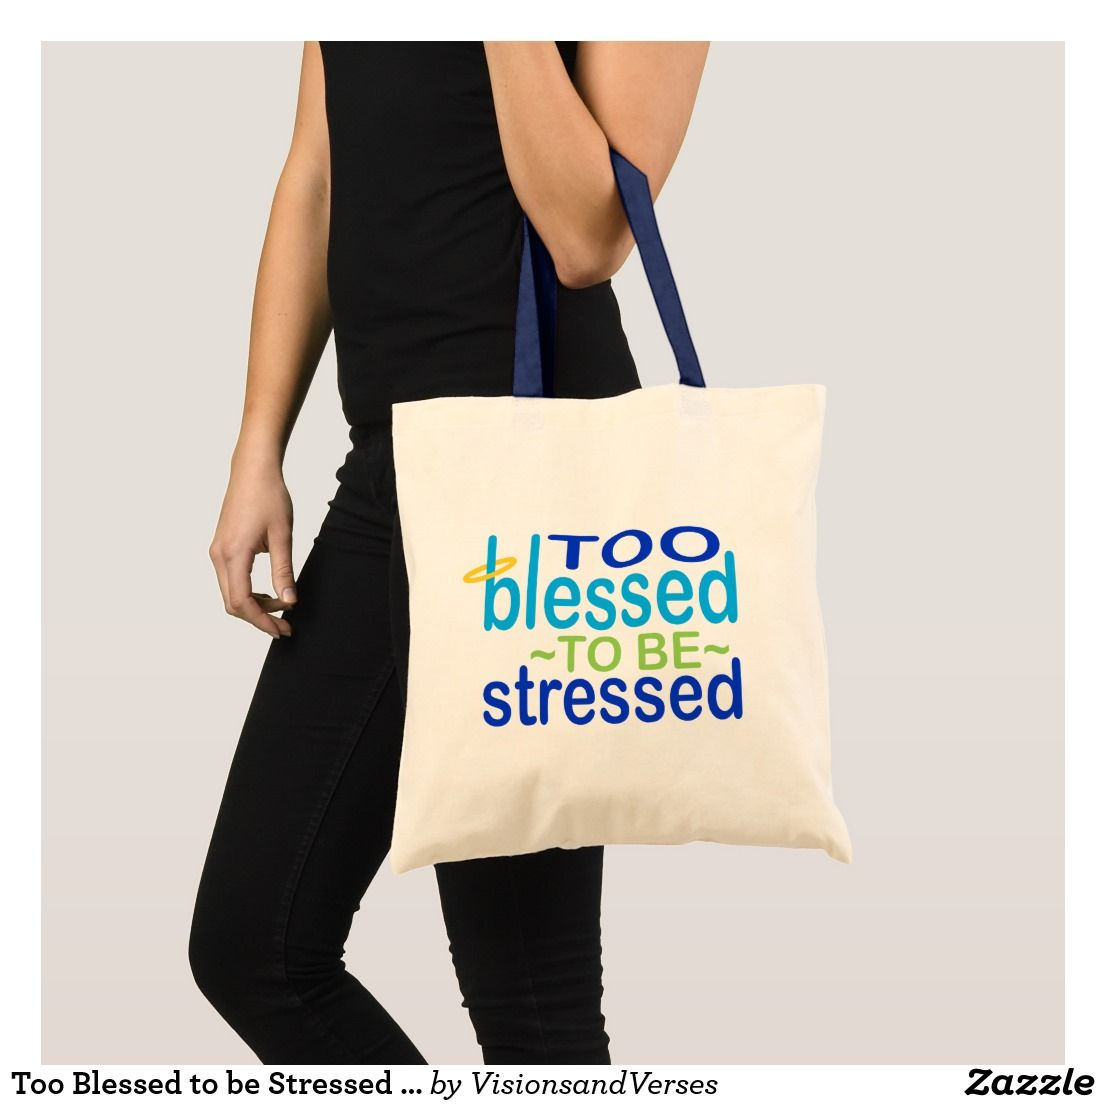 Too Blessed to be Stressed Inspirational Tote Bag